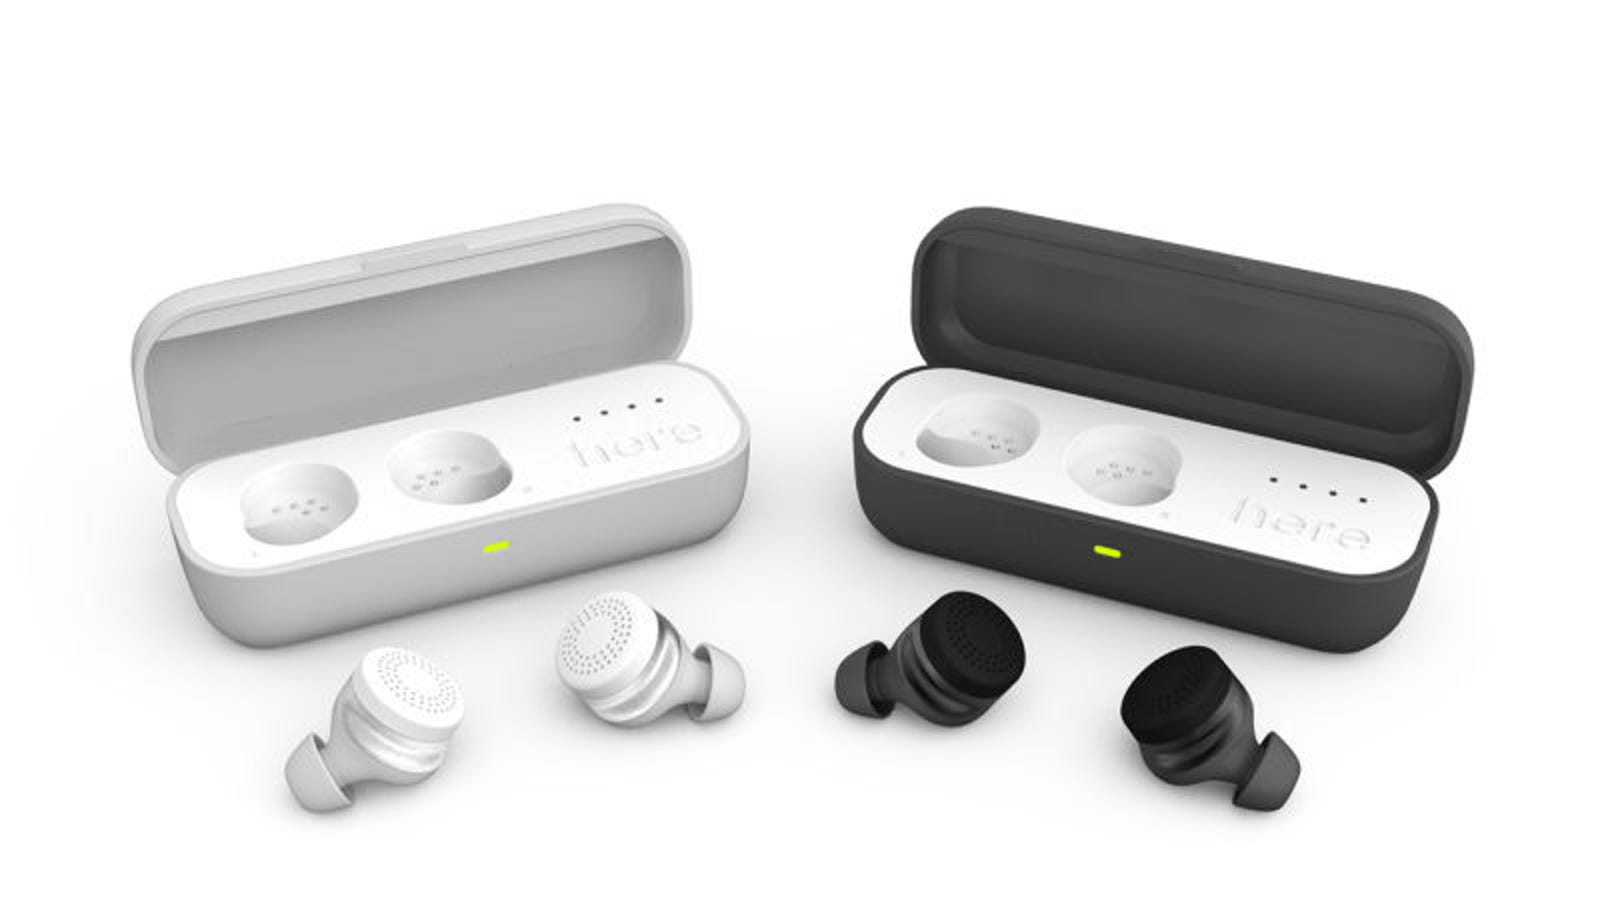 bluetooth earbuds benefast - Innovative Headphone Maker Doppler Labs Was Too Good For This World